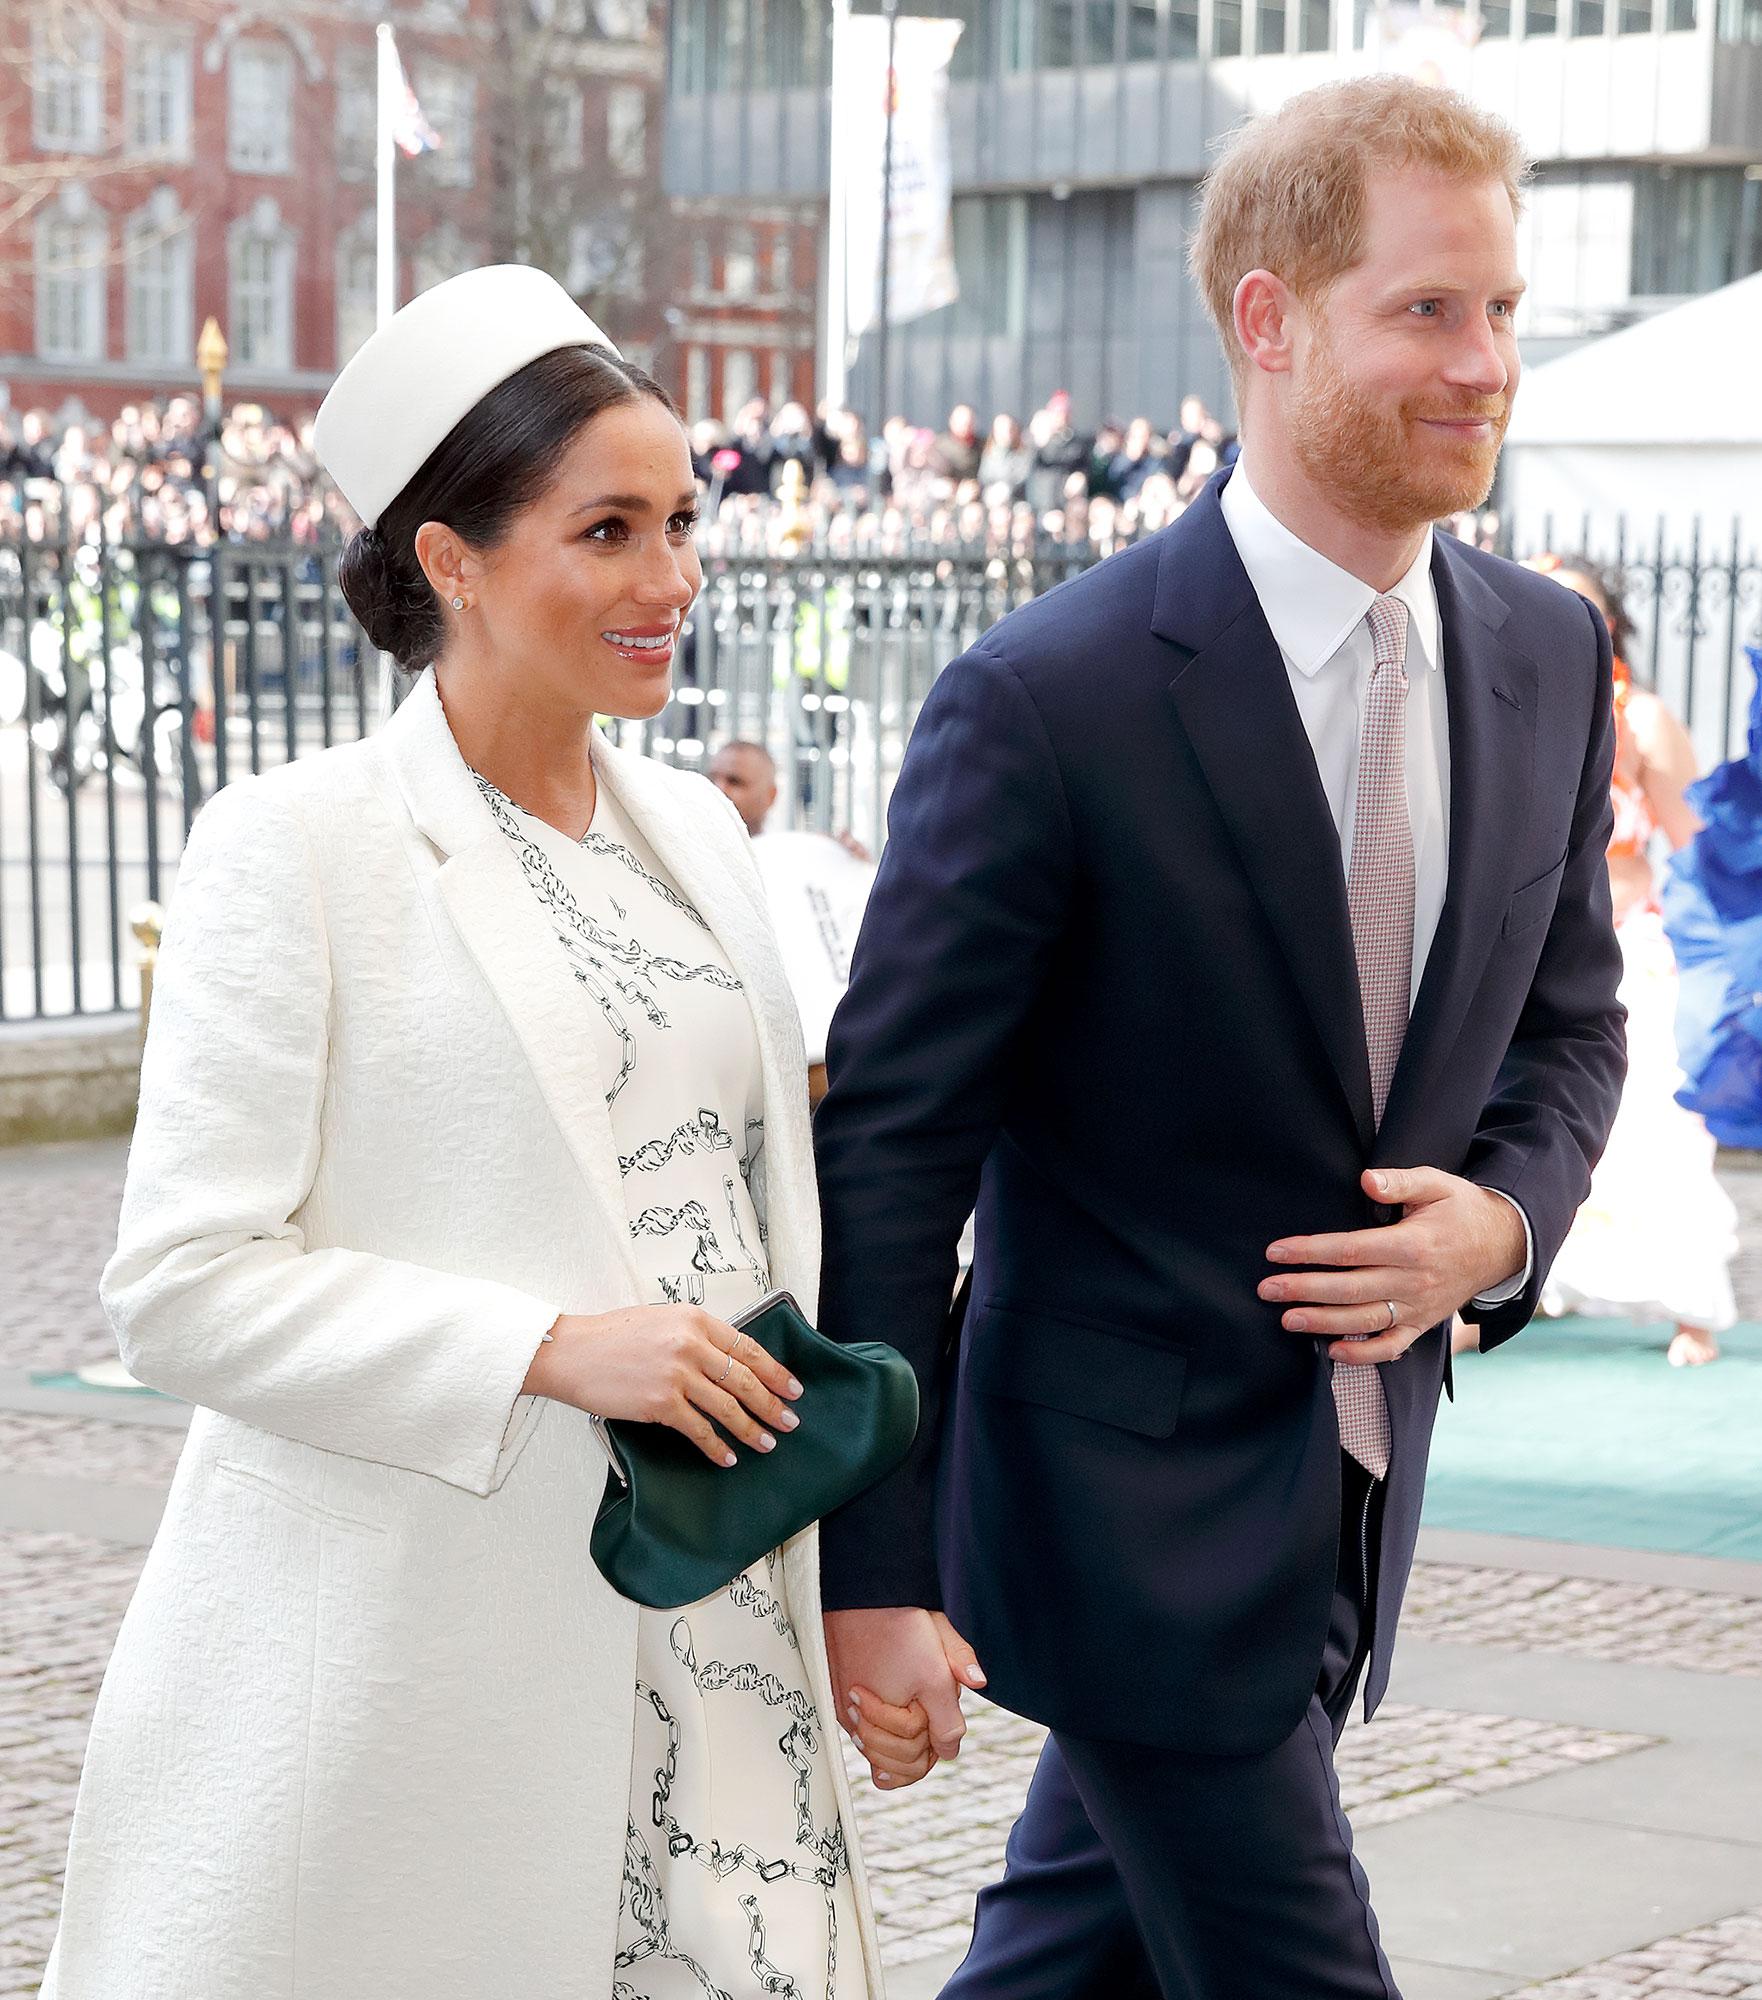 Prince Harry and Pregnant Duchess Meghan Attend His Cousin Zara Tindall's Daughter's Christening - Meghan, Duchess of Sussex and Prince Harry, Duke of Sussex attend the 2019 Commonwealth Day service at Westminster Abbey on March 11, 2019 in London, England.